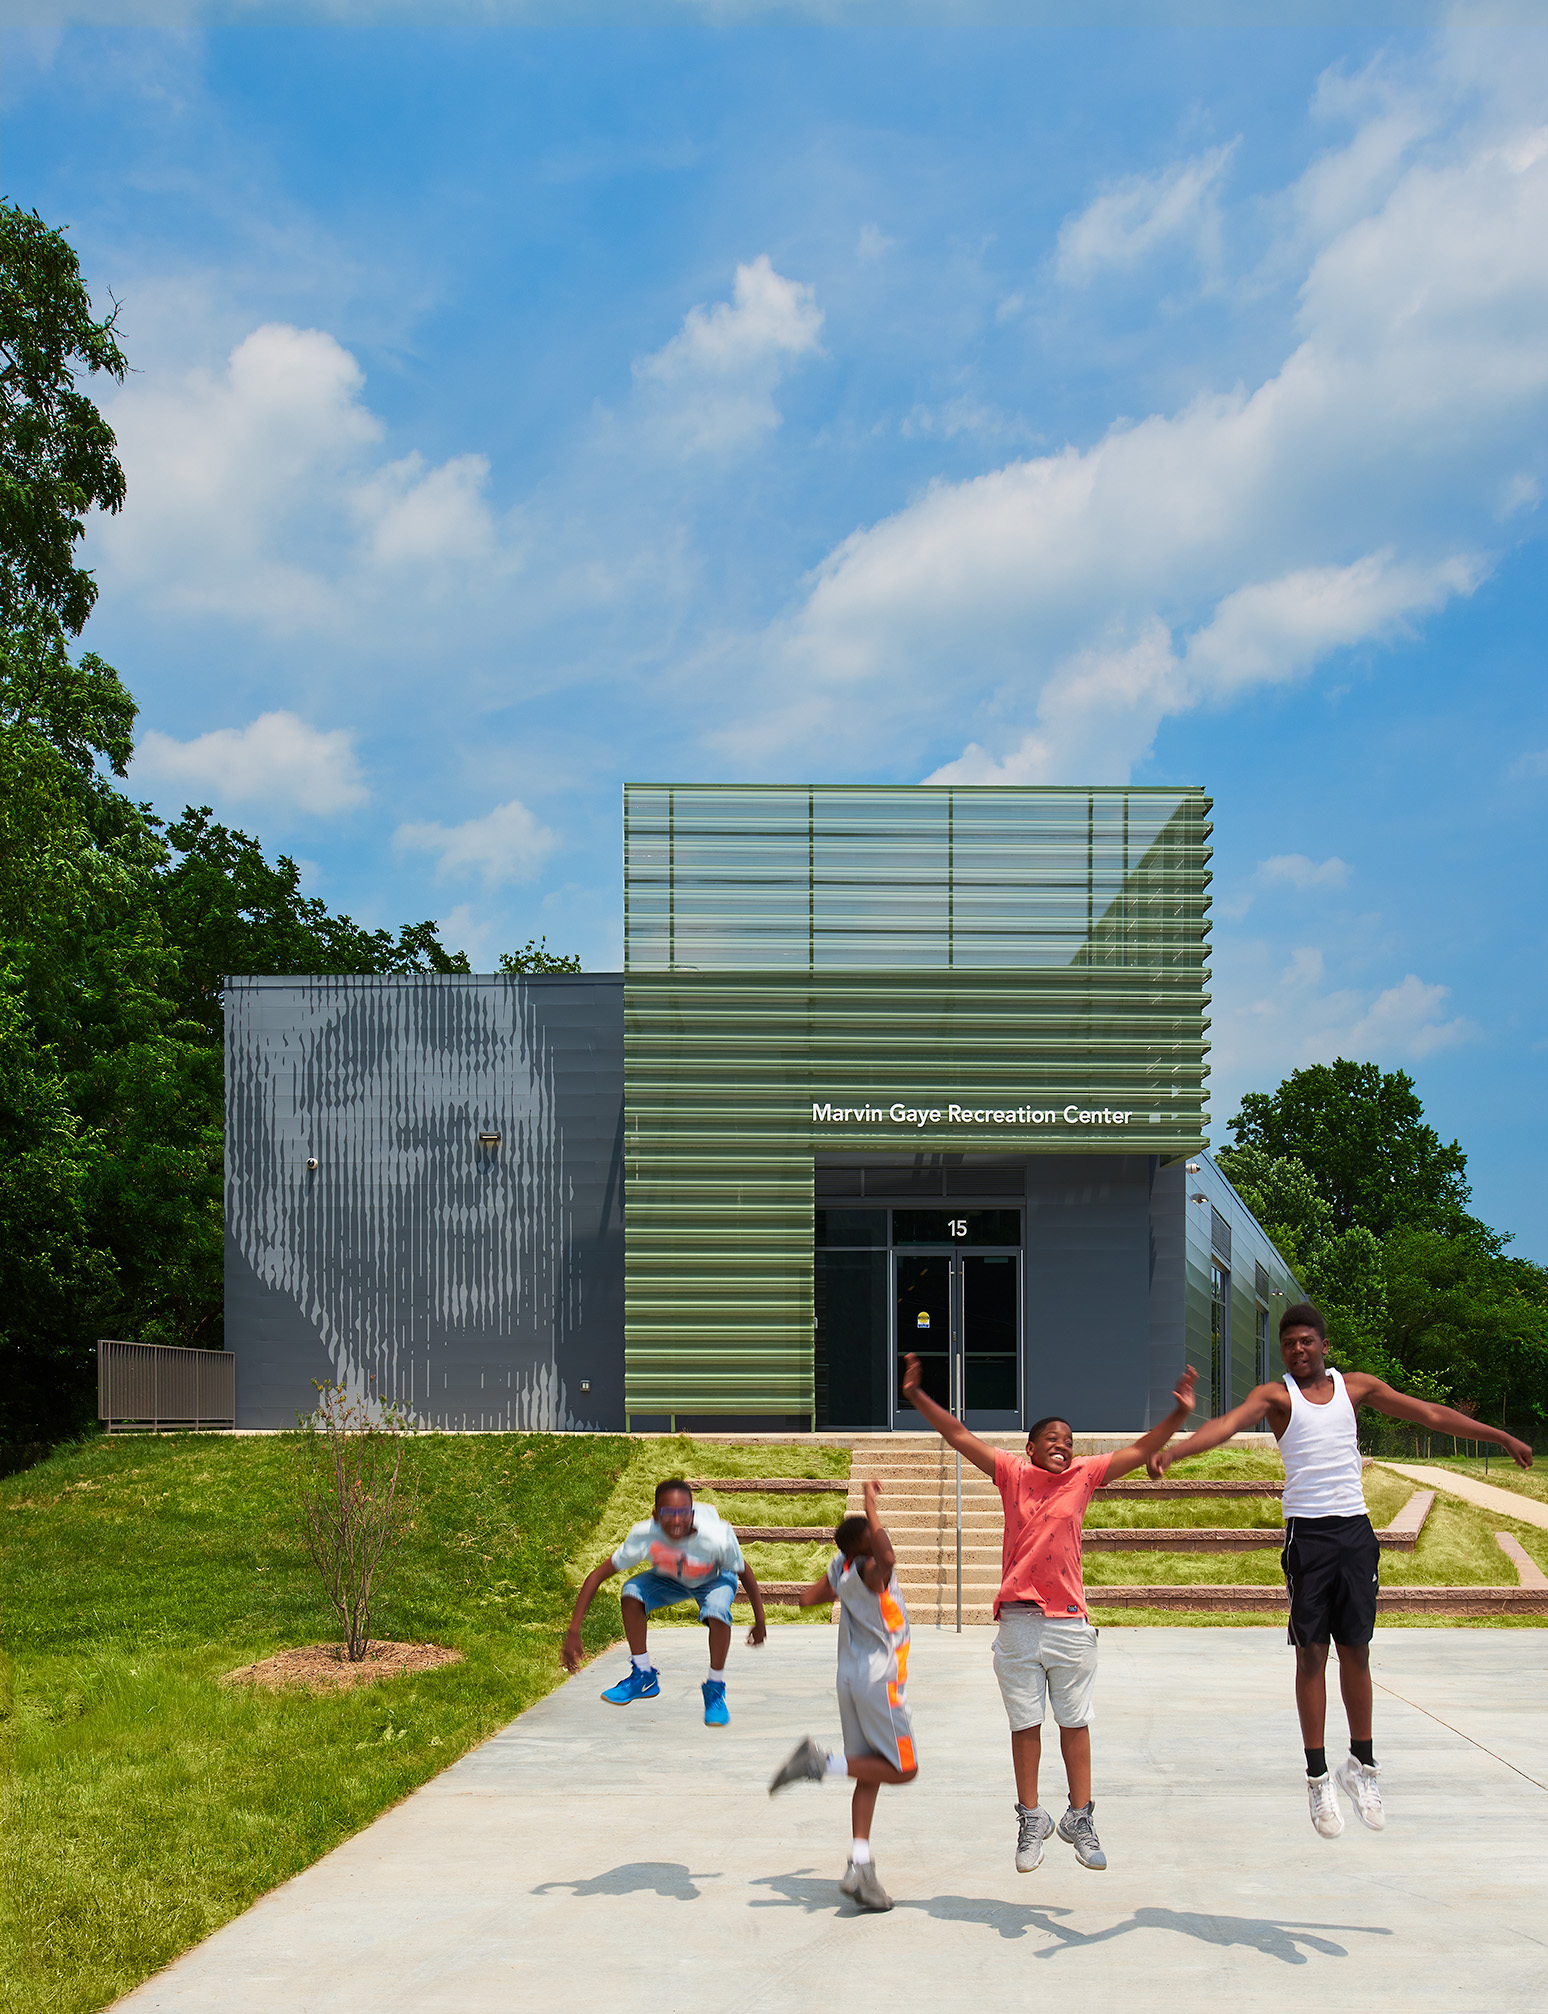 Marvin Gaye Recreation Center - AIA DC Sustainability Award